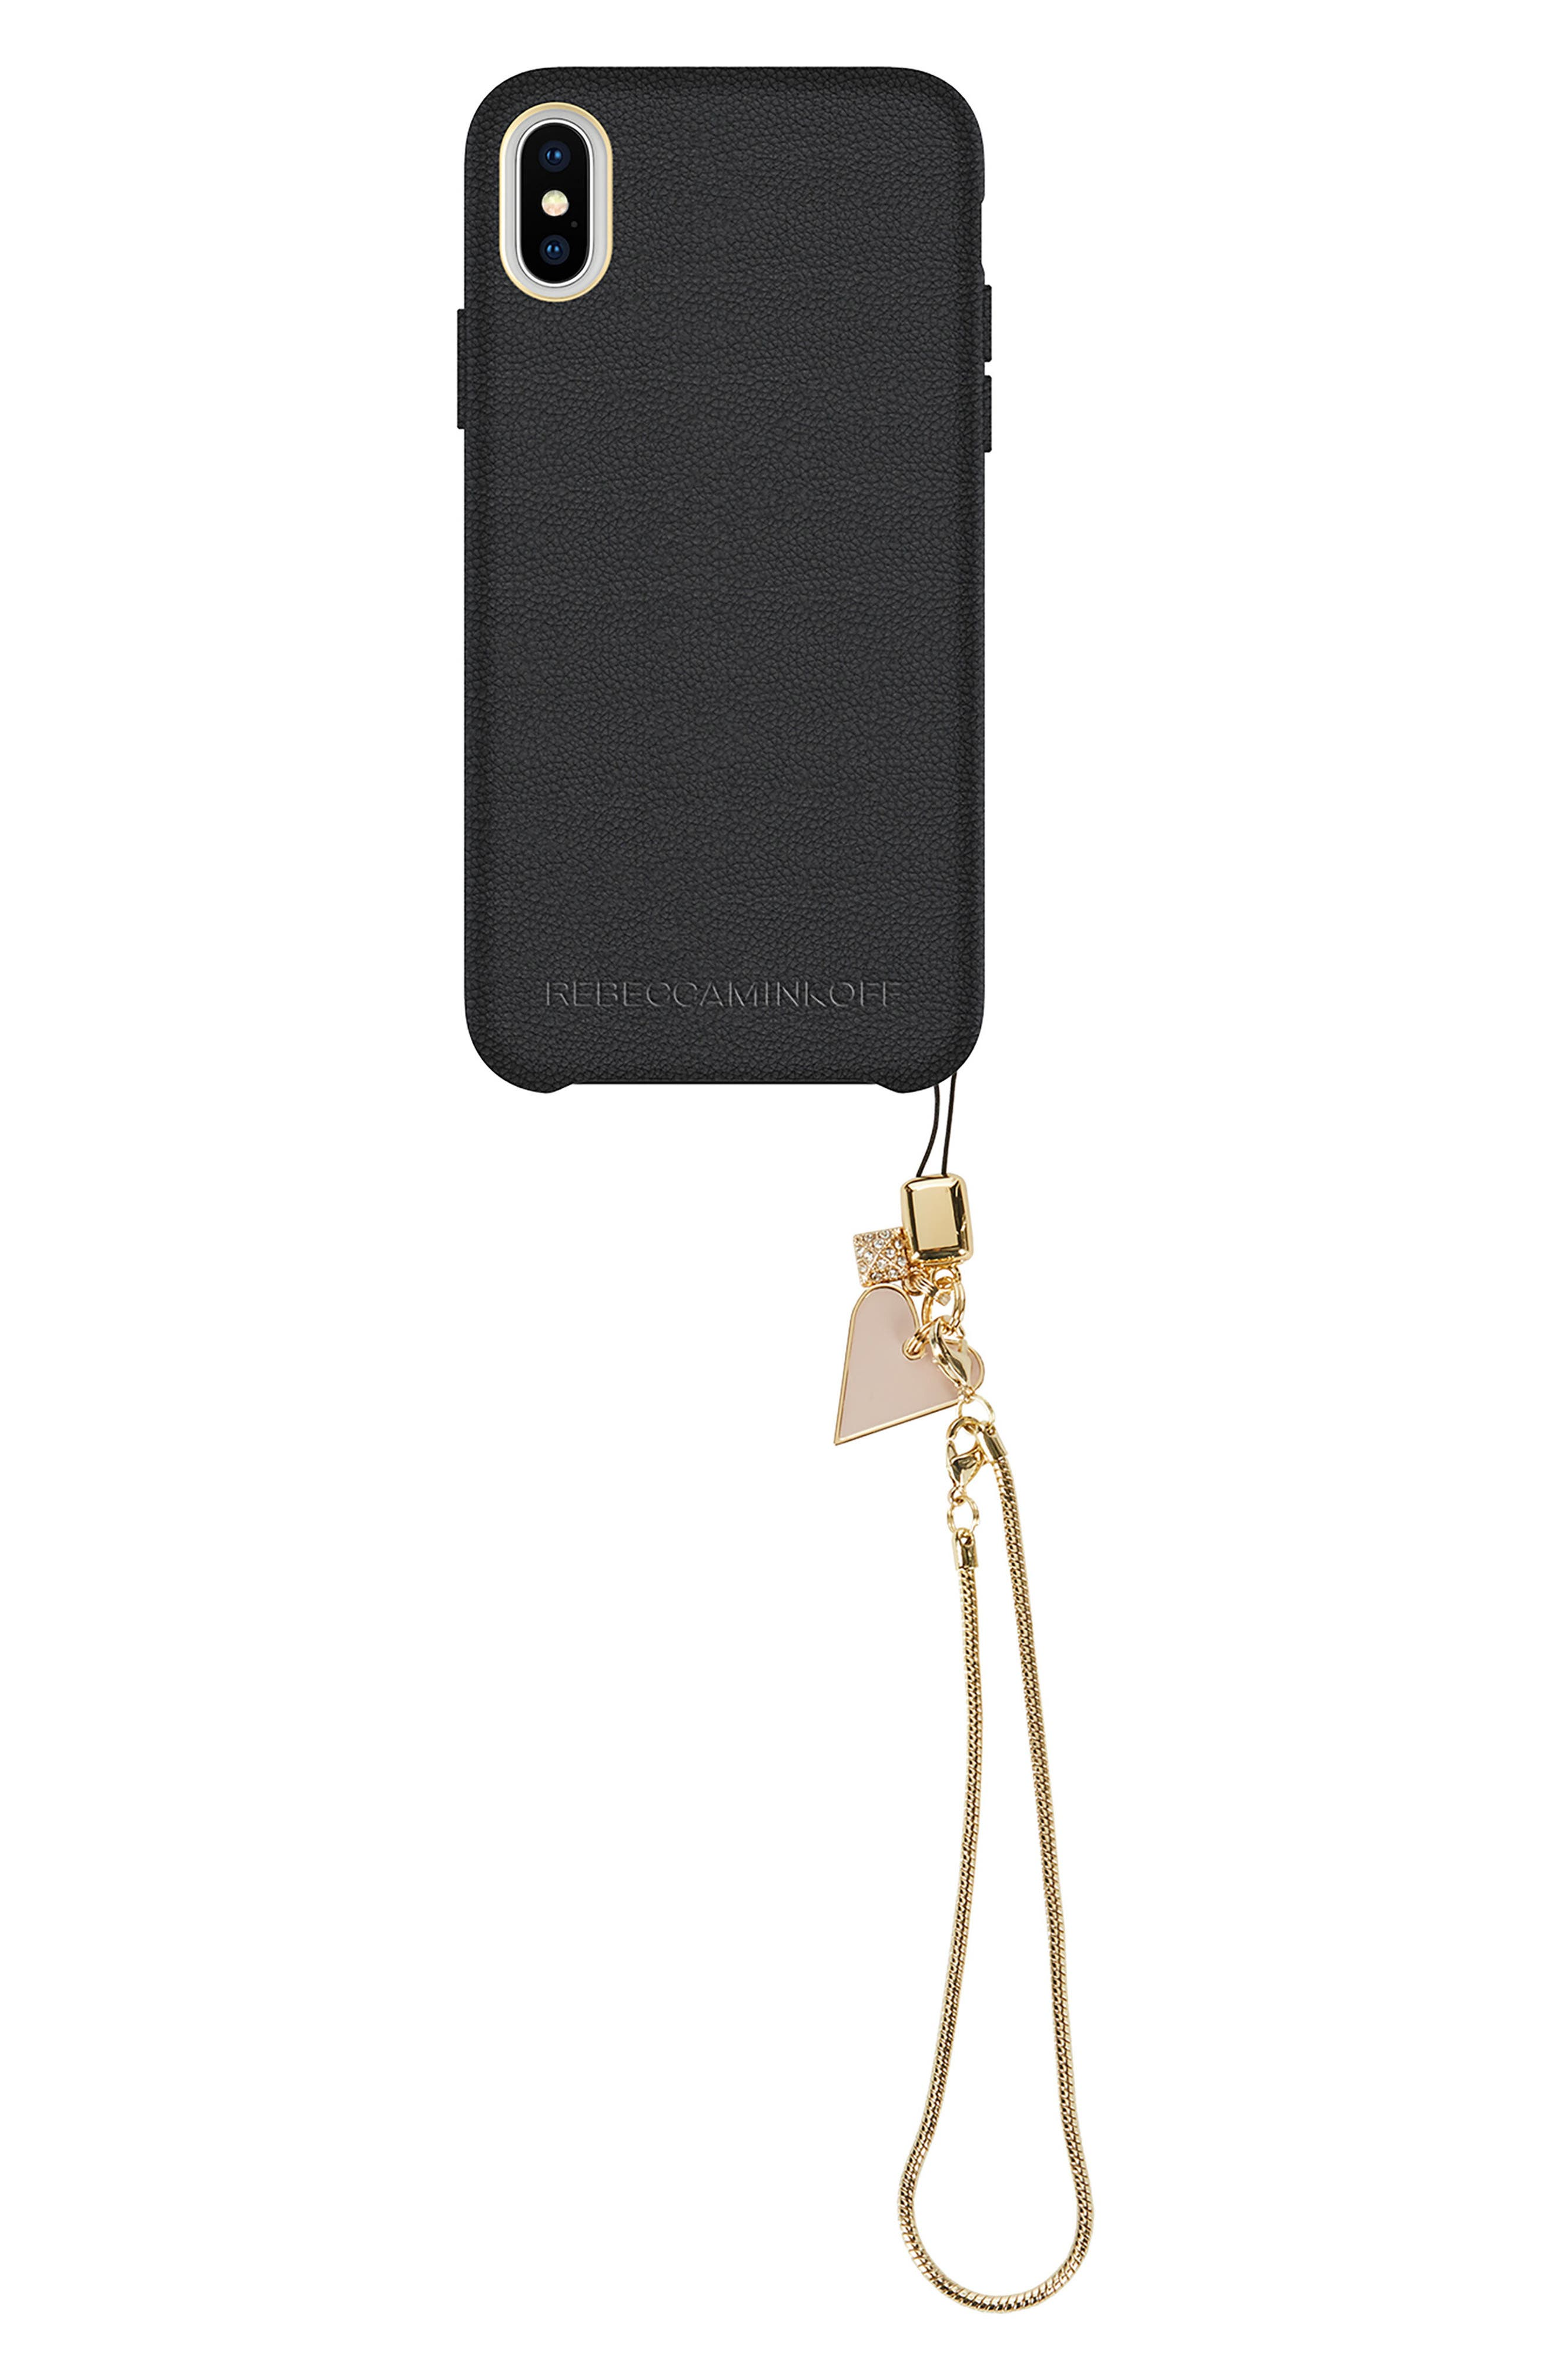 Leather iPhone X Wristlet Case with Charms,                         Main,                         color, Black